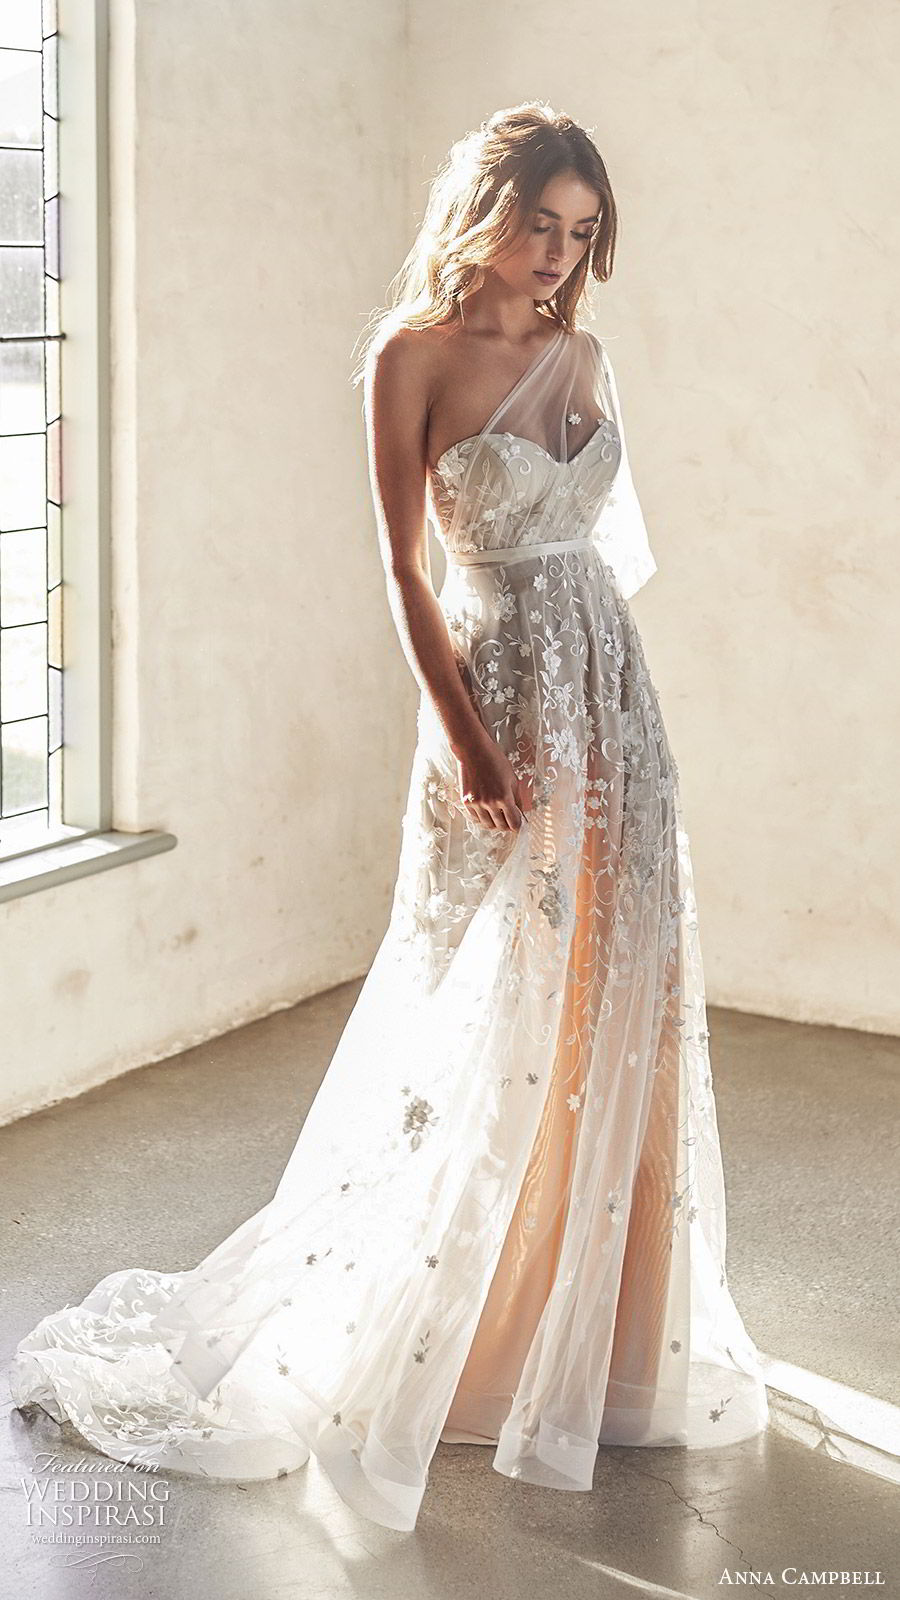 anna campbell 2020 bridal illusion one shoulder sweetheart ruched bodice fully embellished lace a line ball gown wedding dress (2) romantic boho blush color chapel train mv